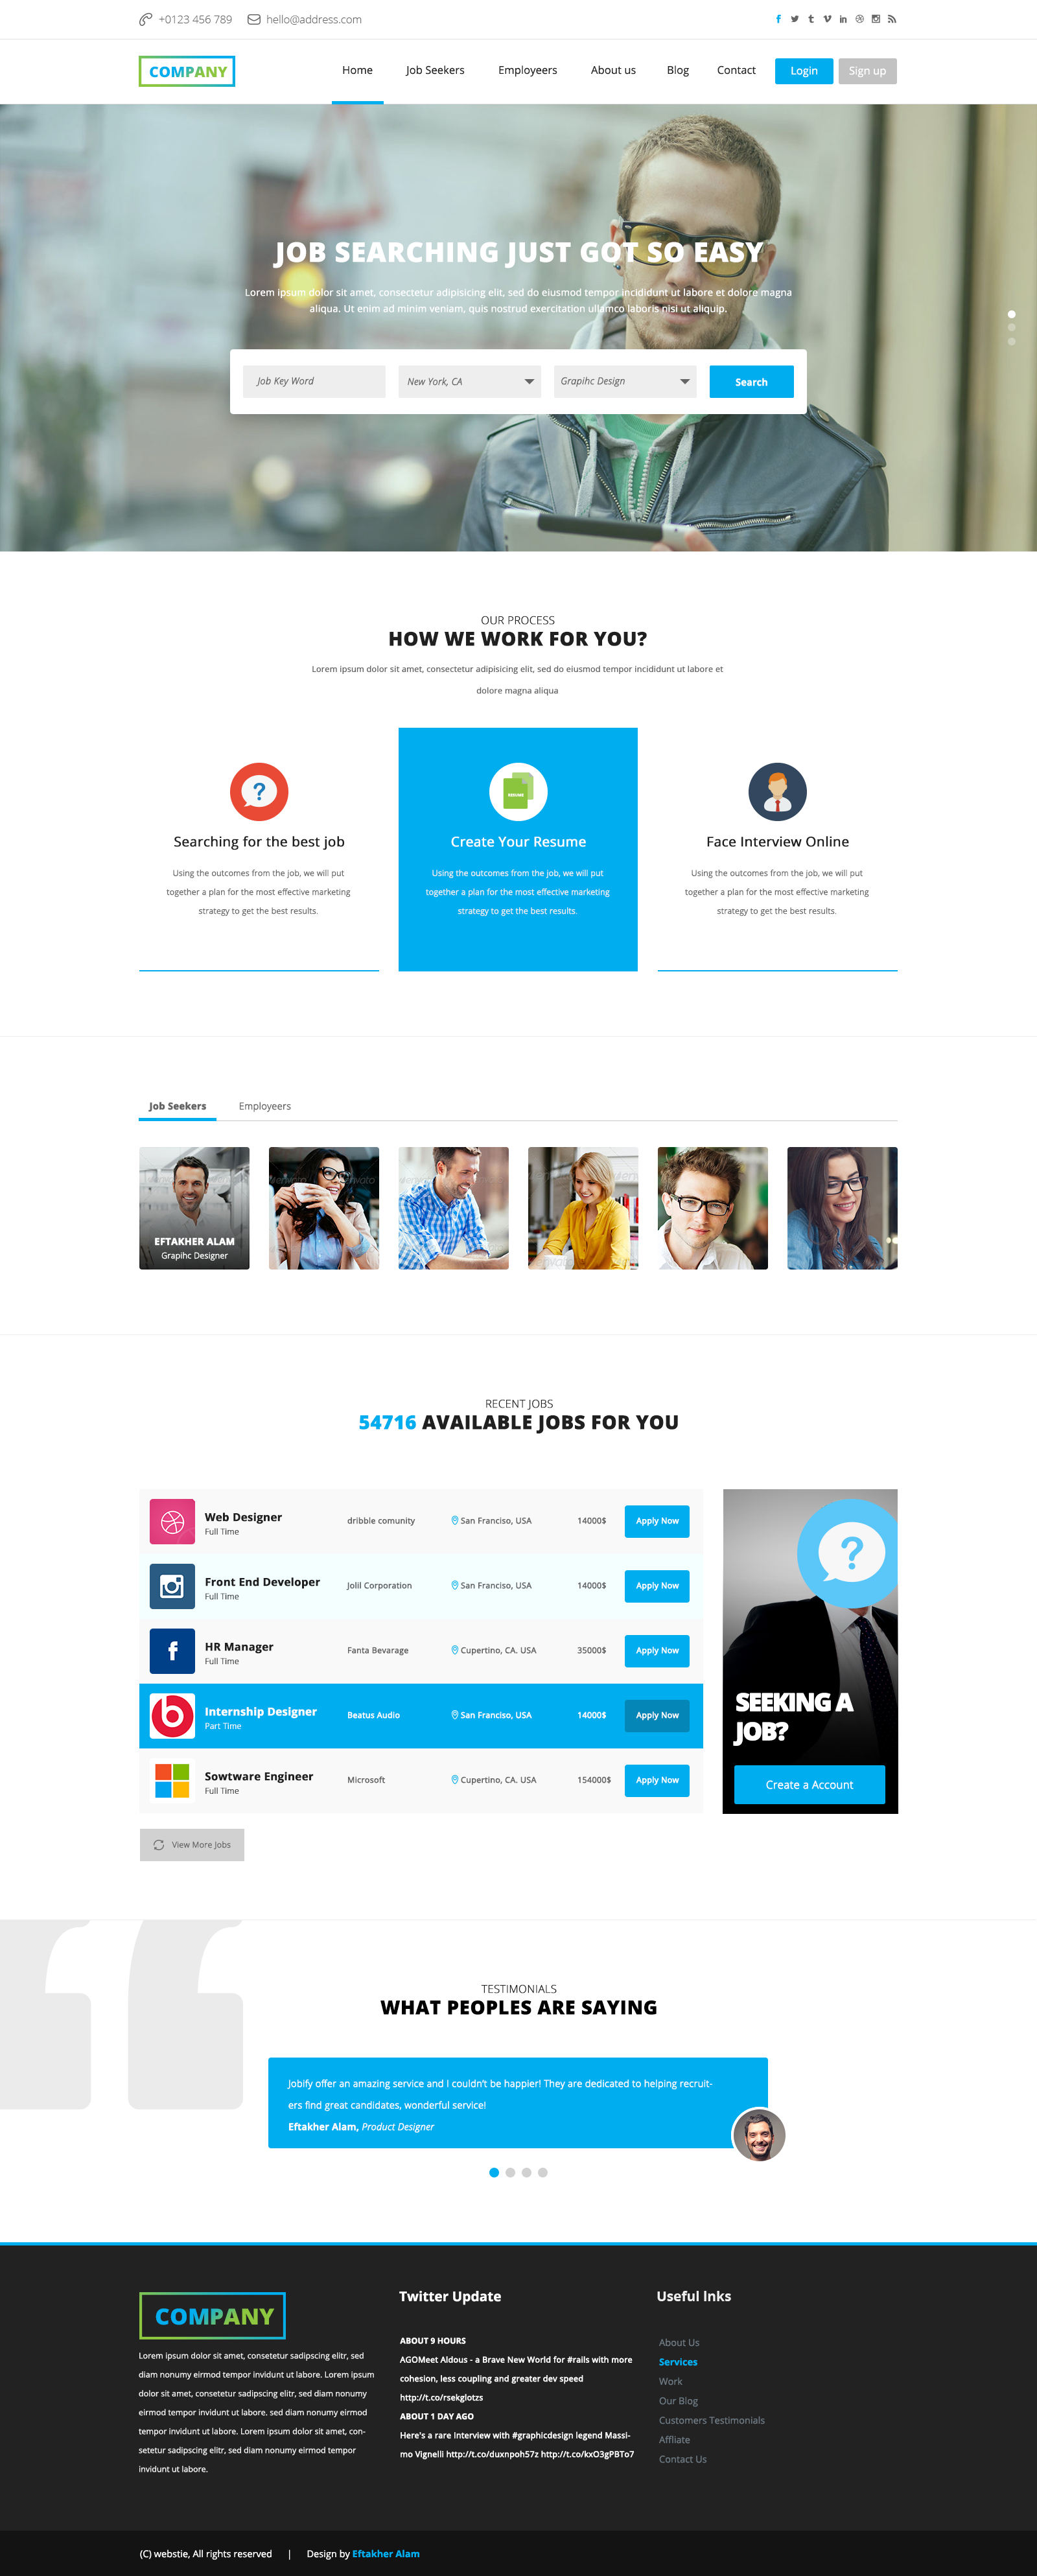 job board web template deeziner job board web template 18 2015 board bie job psd